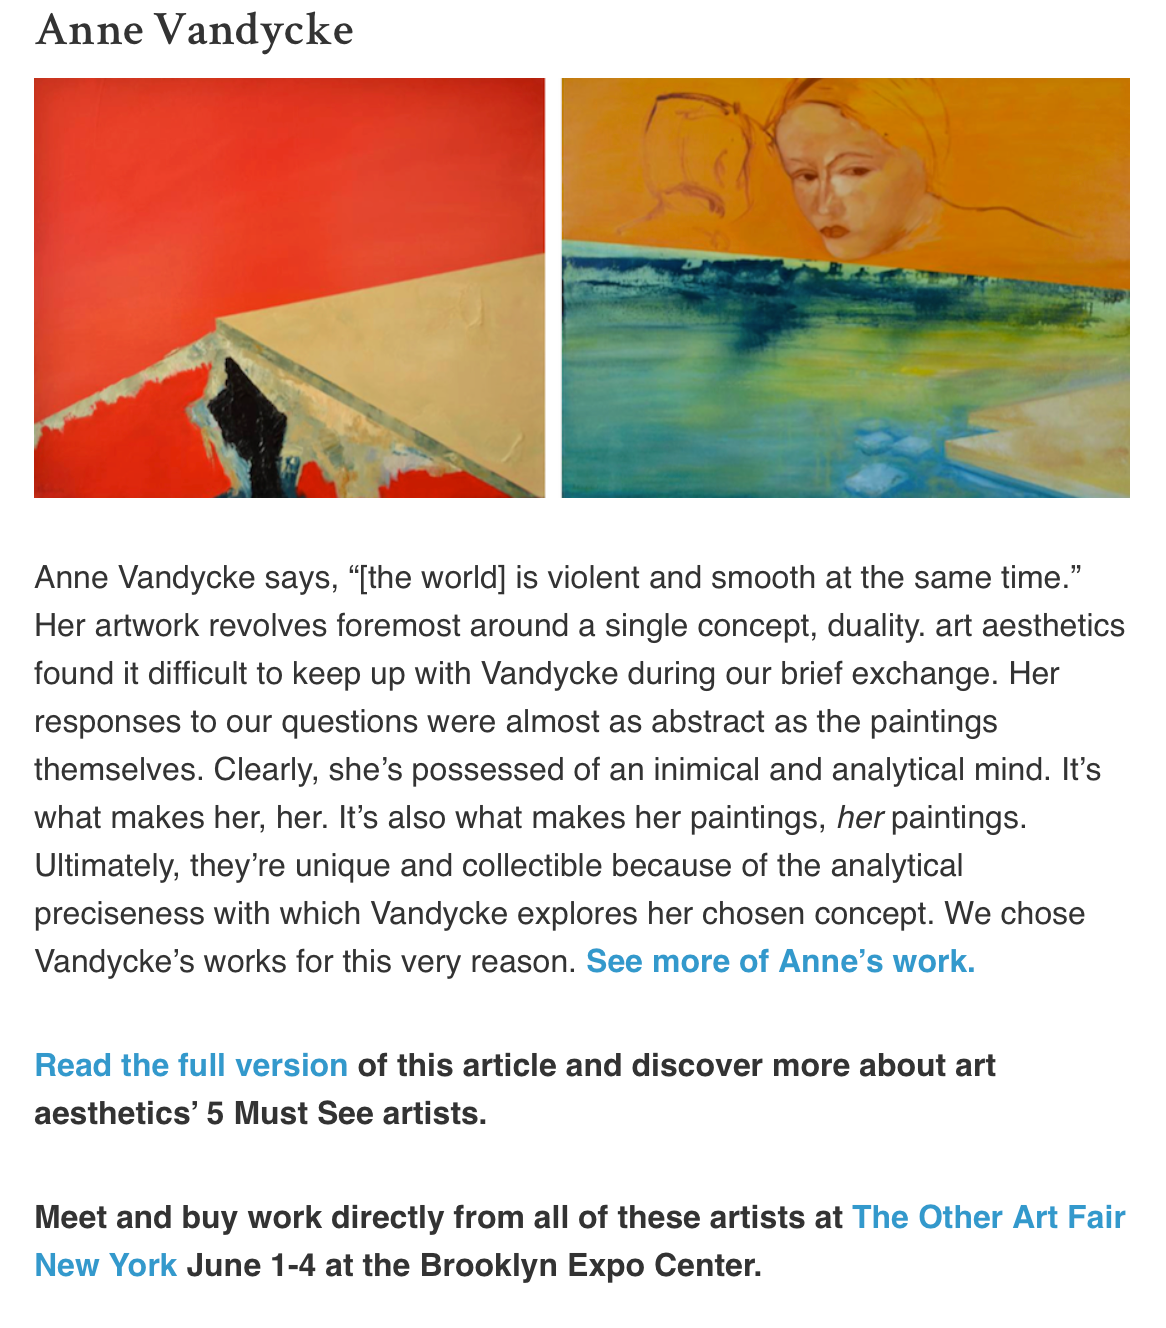 Art Aesthetics Article on Saatchi Art Blog